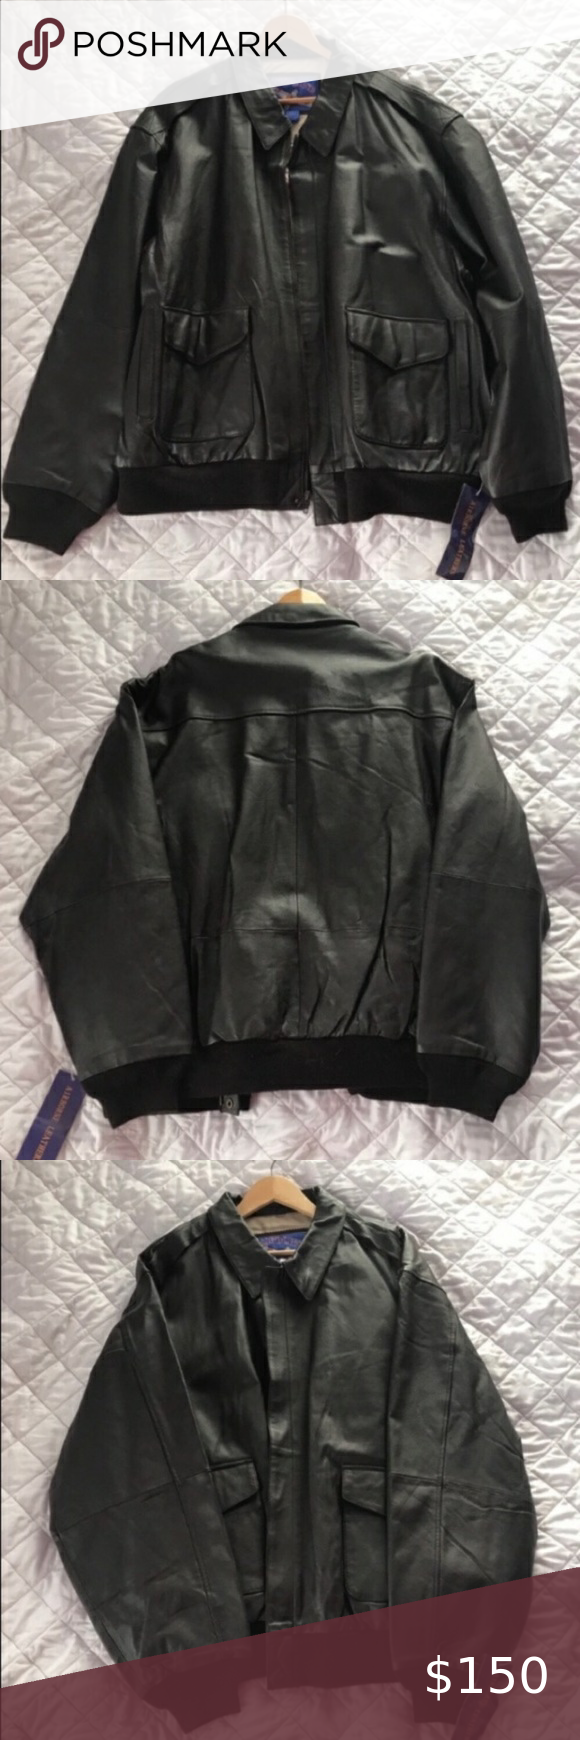 Men S Leather Jacket 2xlt Big And Tall Men Tall Men Fashion 50 Year Old Man Fashion Tall Guys [ 1740 x 580 Pixel ]